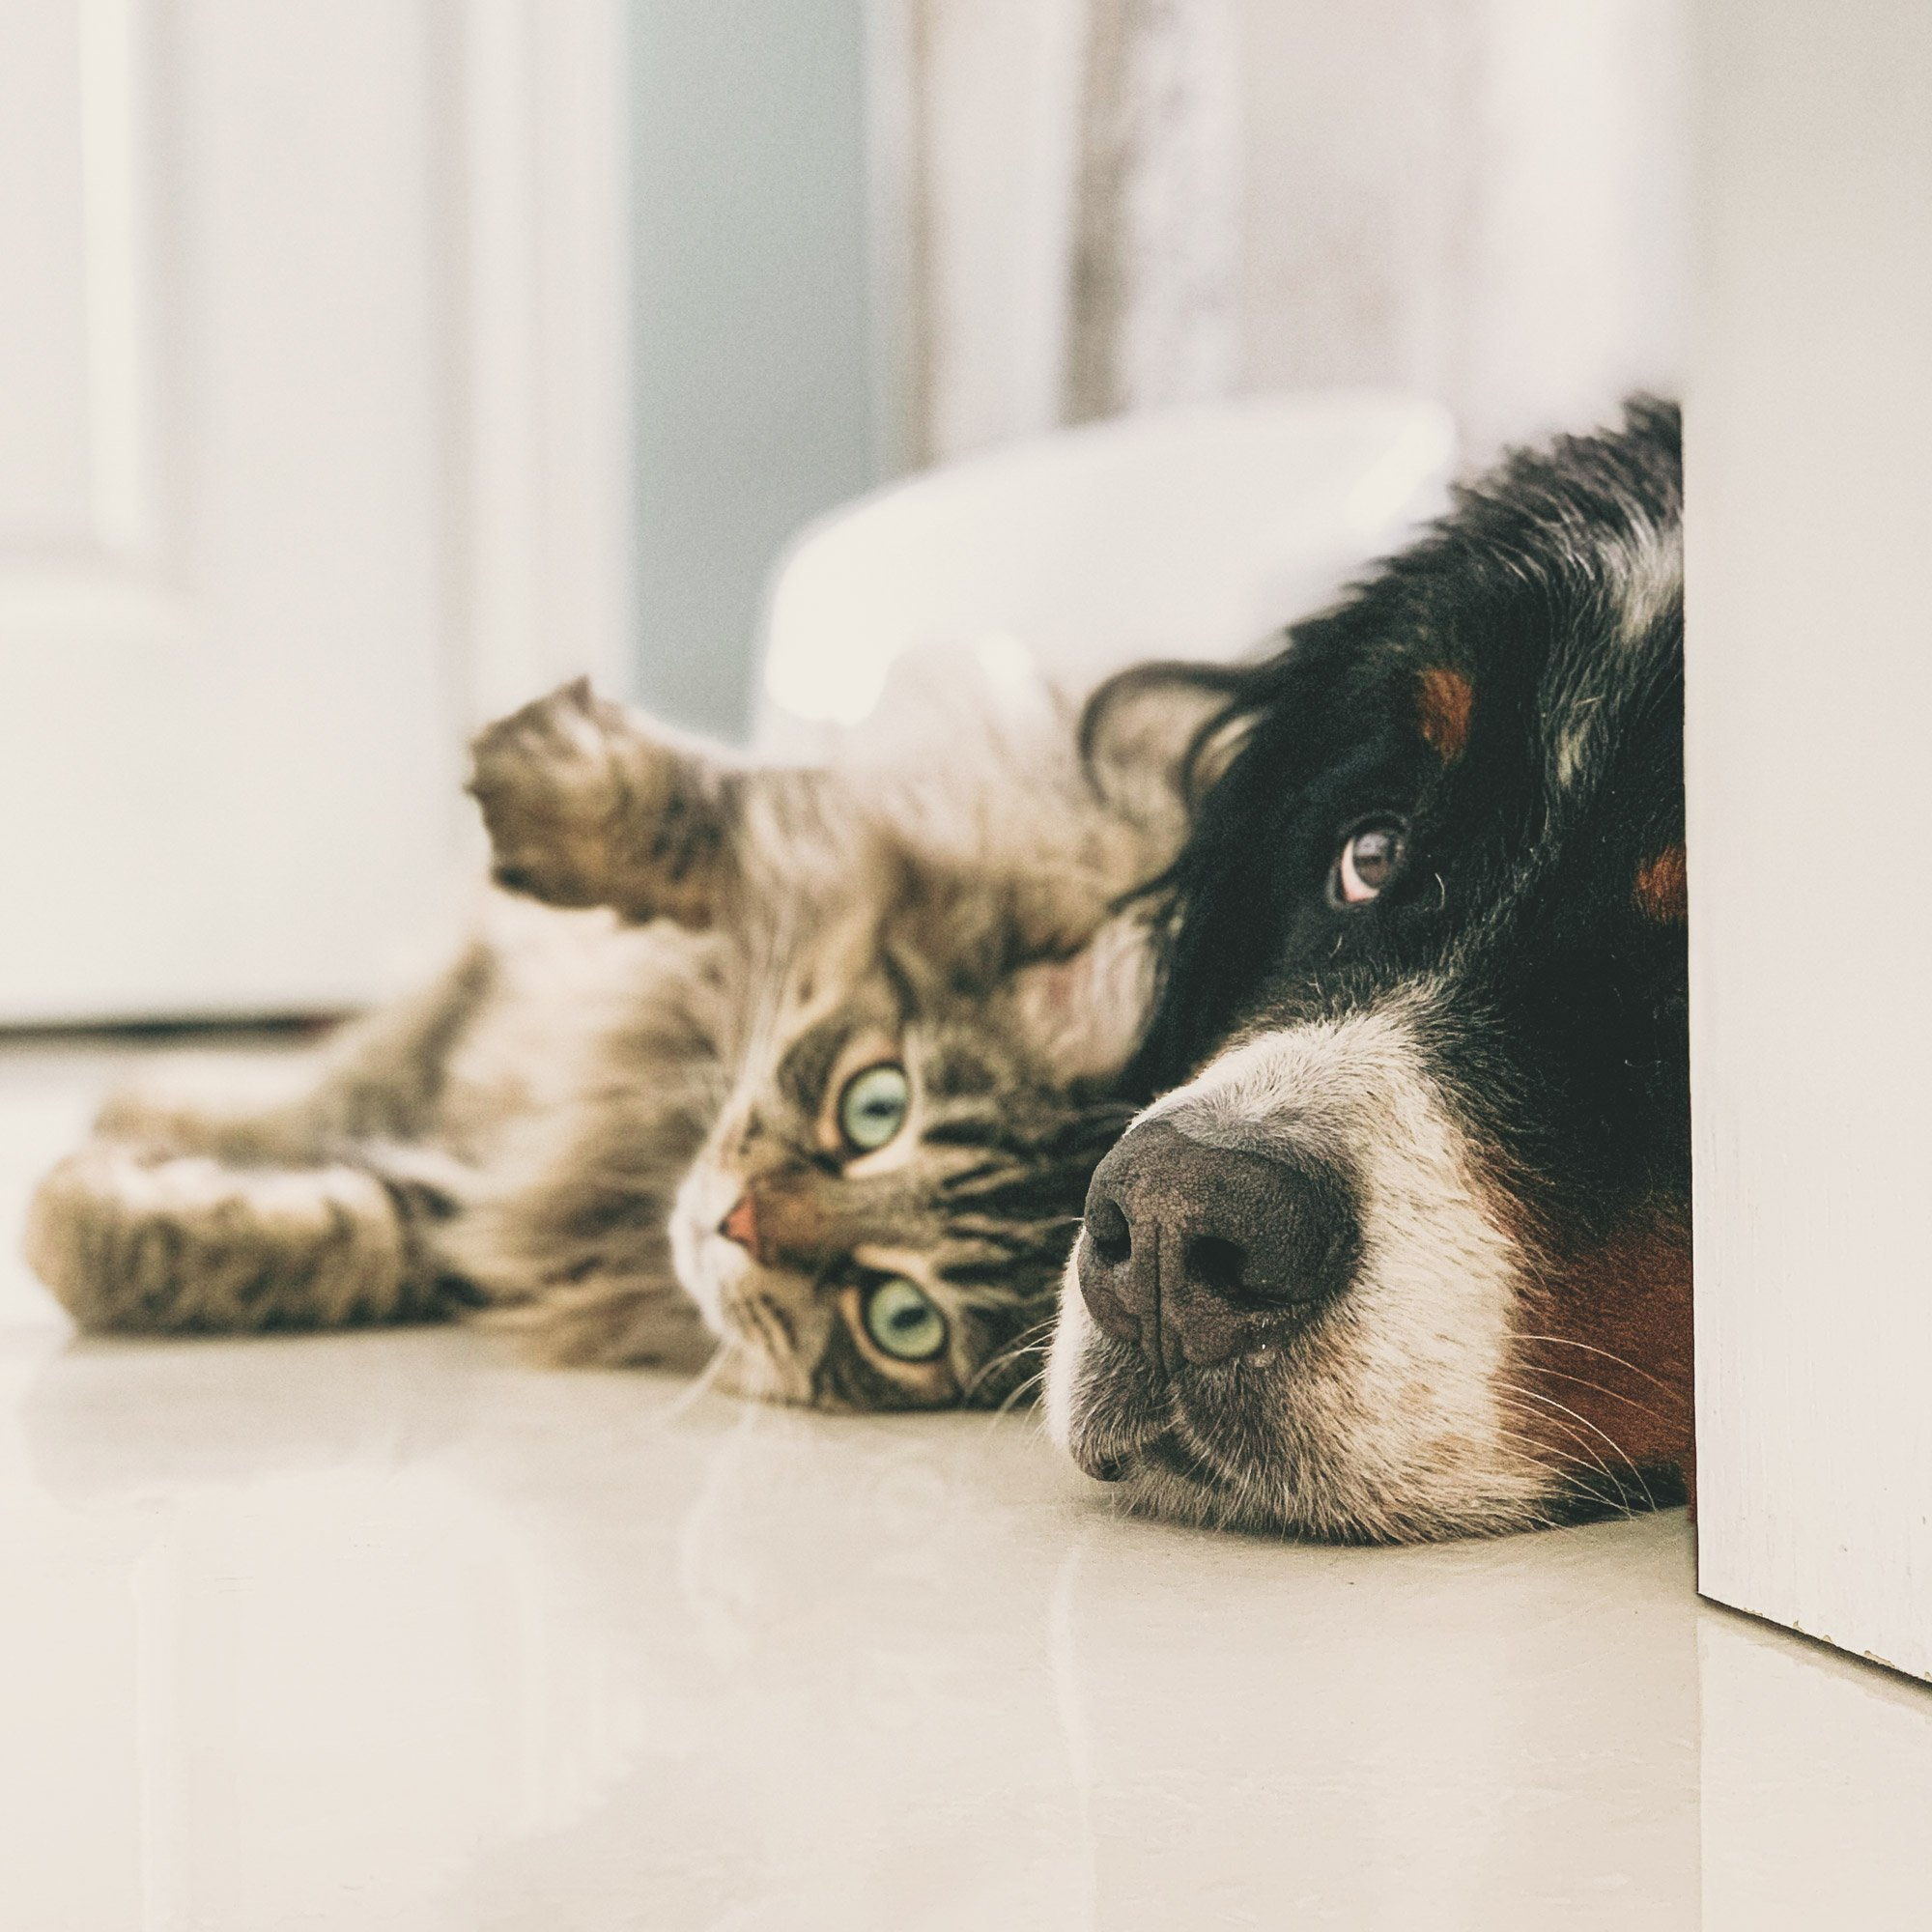 Dog and cat laying on the floor